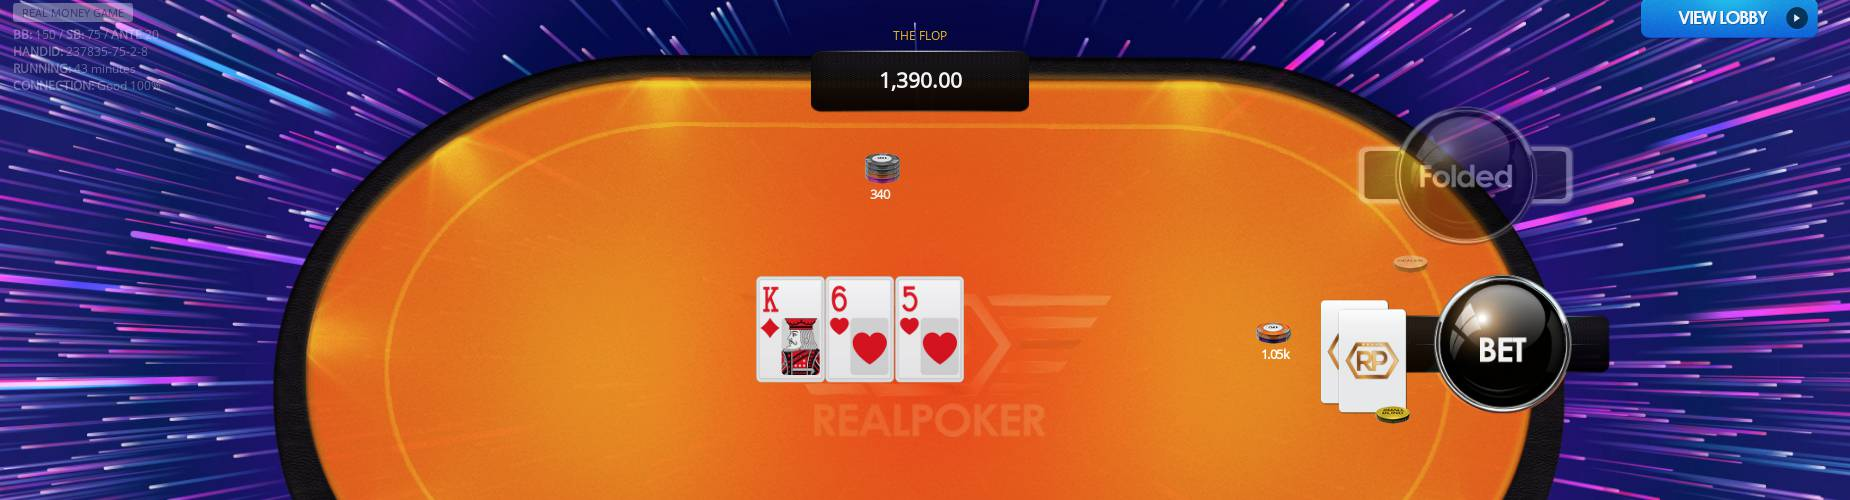 Should You Ever Fold Pocket Aces in Online Poker